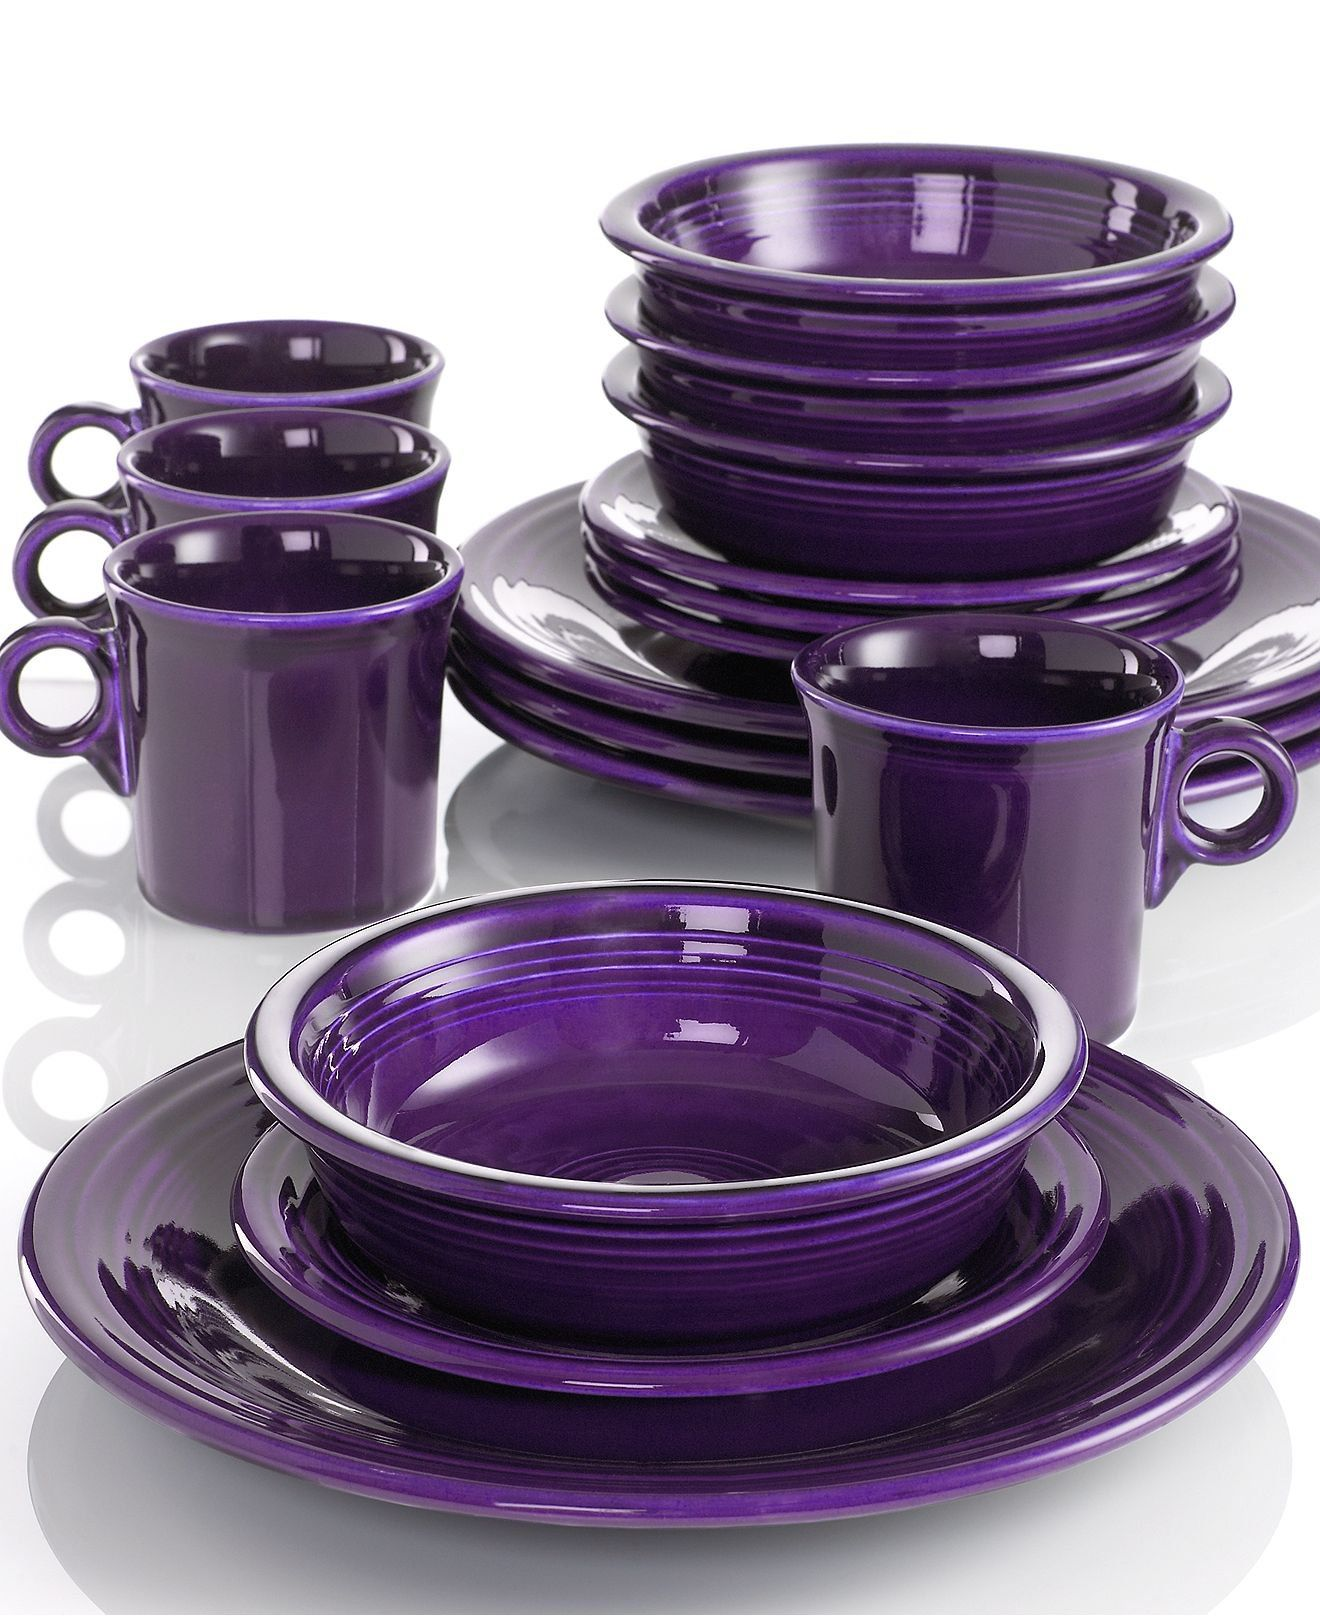 Fiesta Dinnerware plate setting in Plum